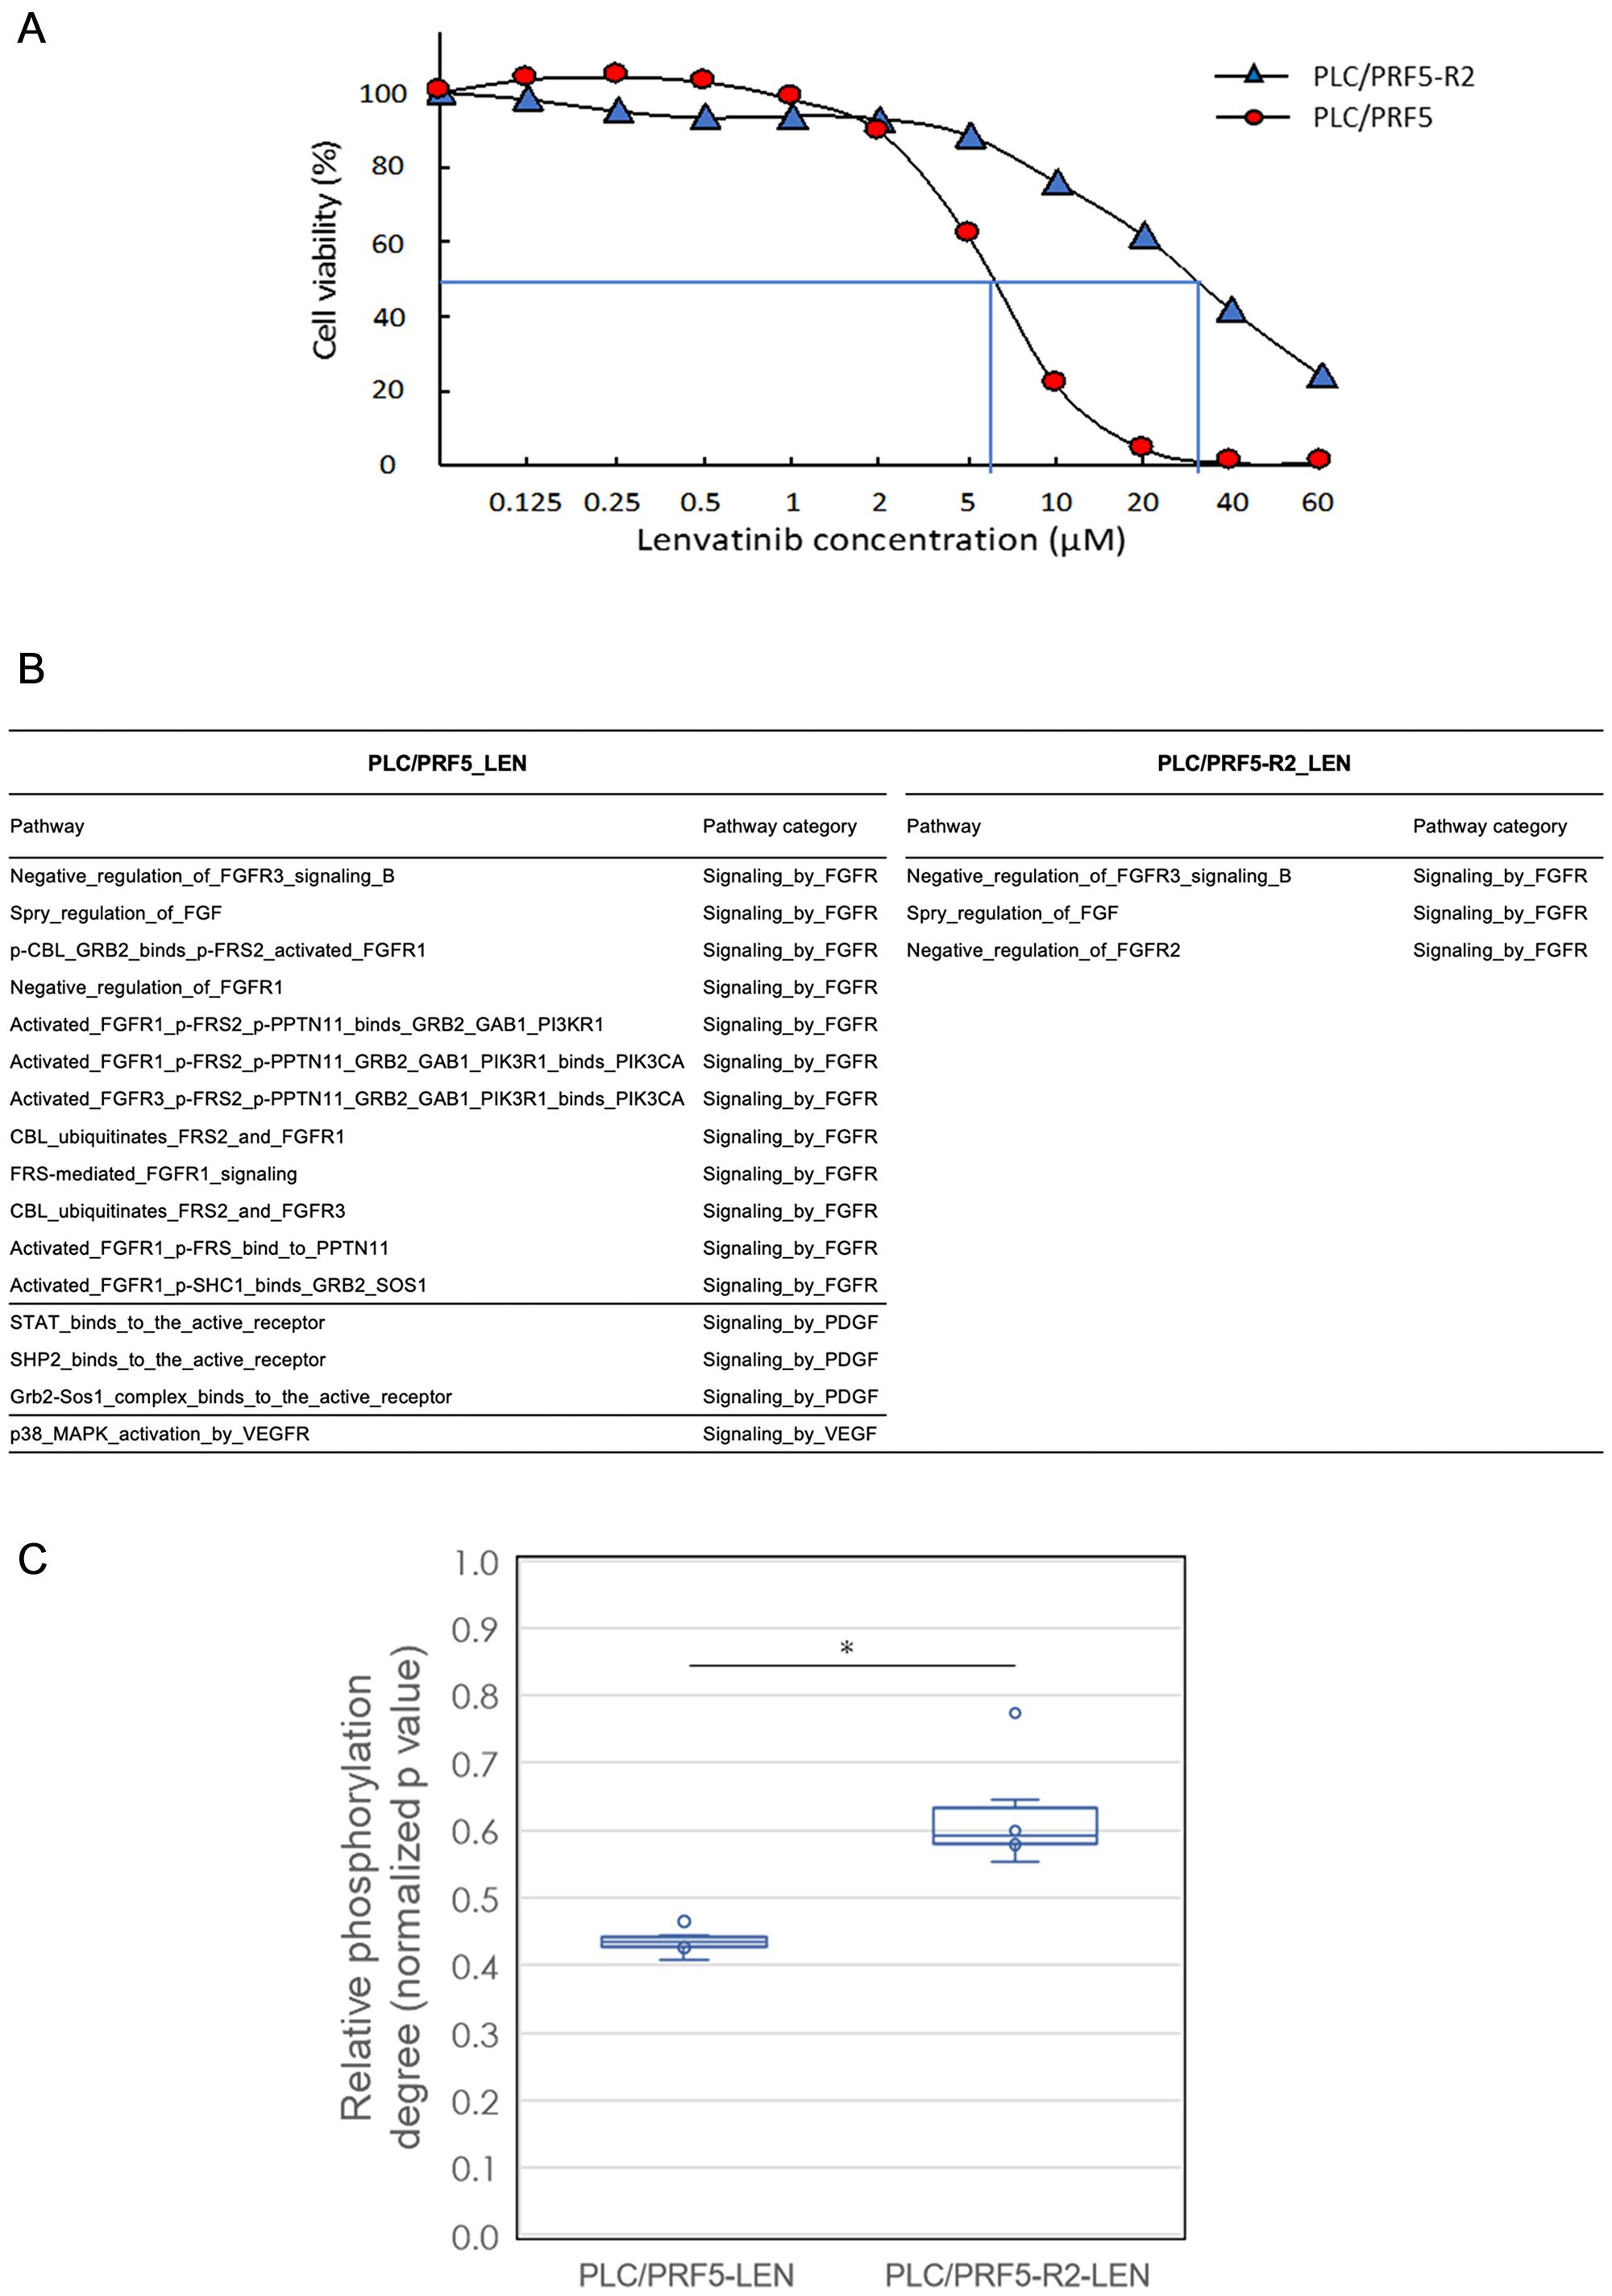 In vitro cell viability and signal transduction pathway analysis of sorafenib (SOR)-resistant cell line with lenvatinib treatment by a comprehensive protein phosphorylation array.